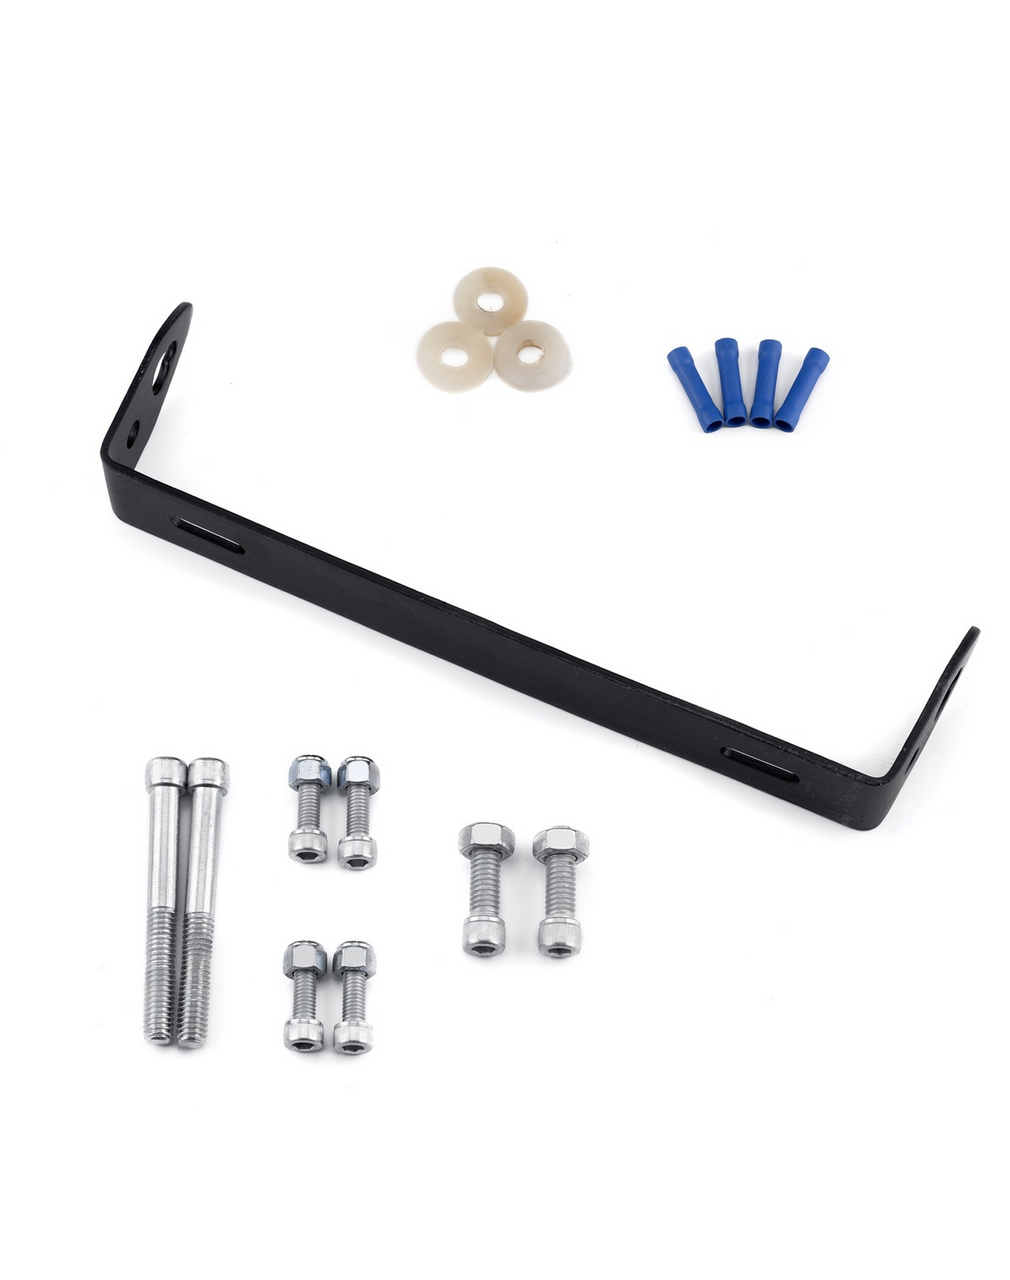 Universal Turn Signal Relocation Kit With Nets and Bolts